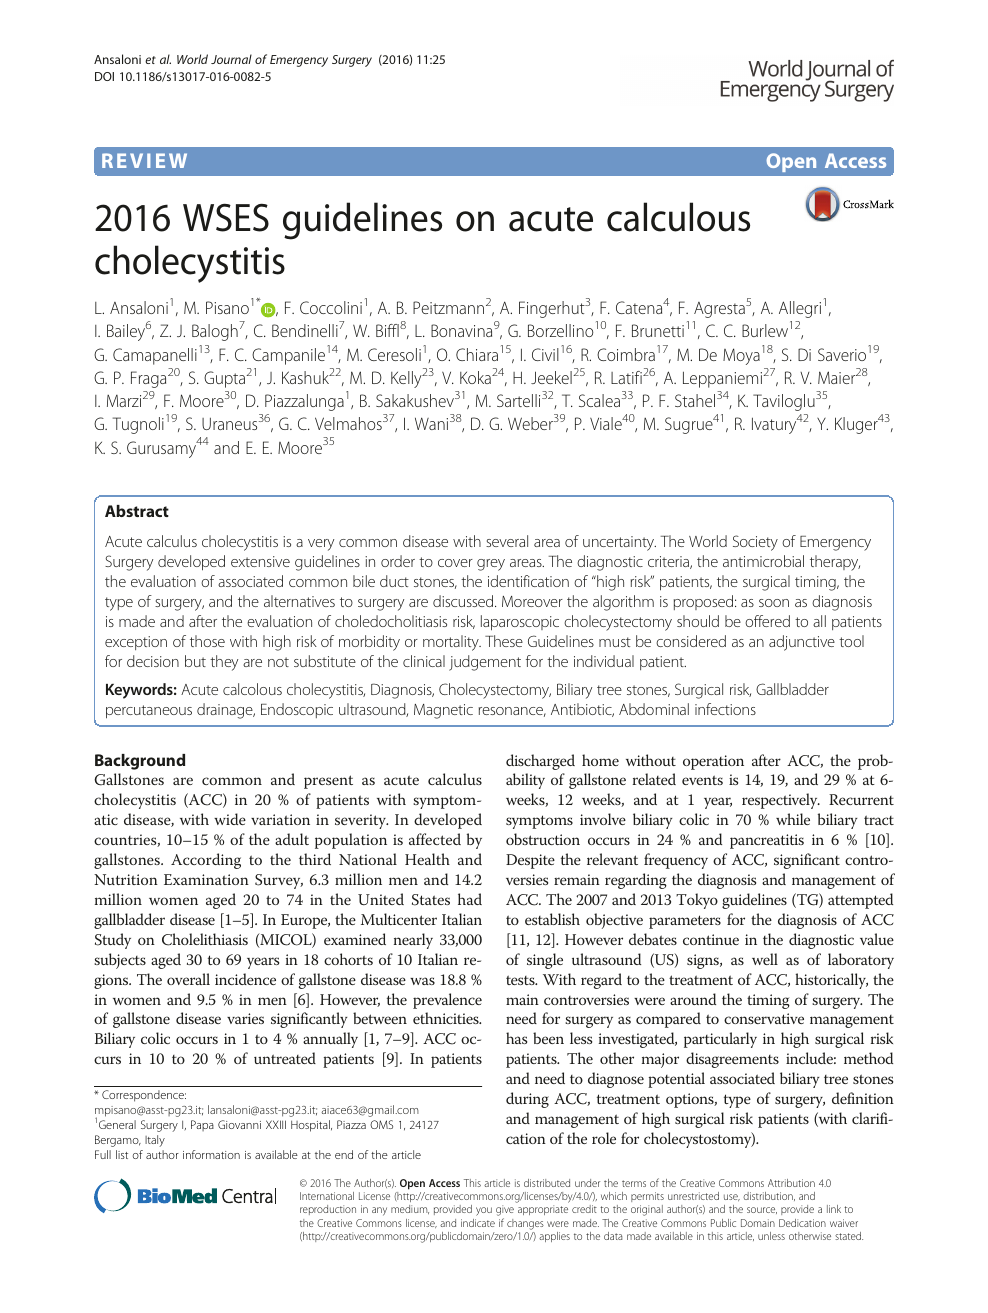 2016 WSES guidelines on acute calculous cholecystitis